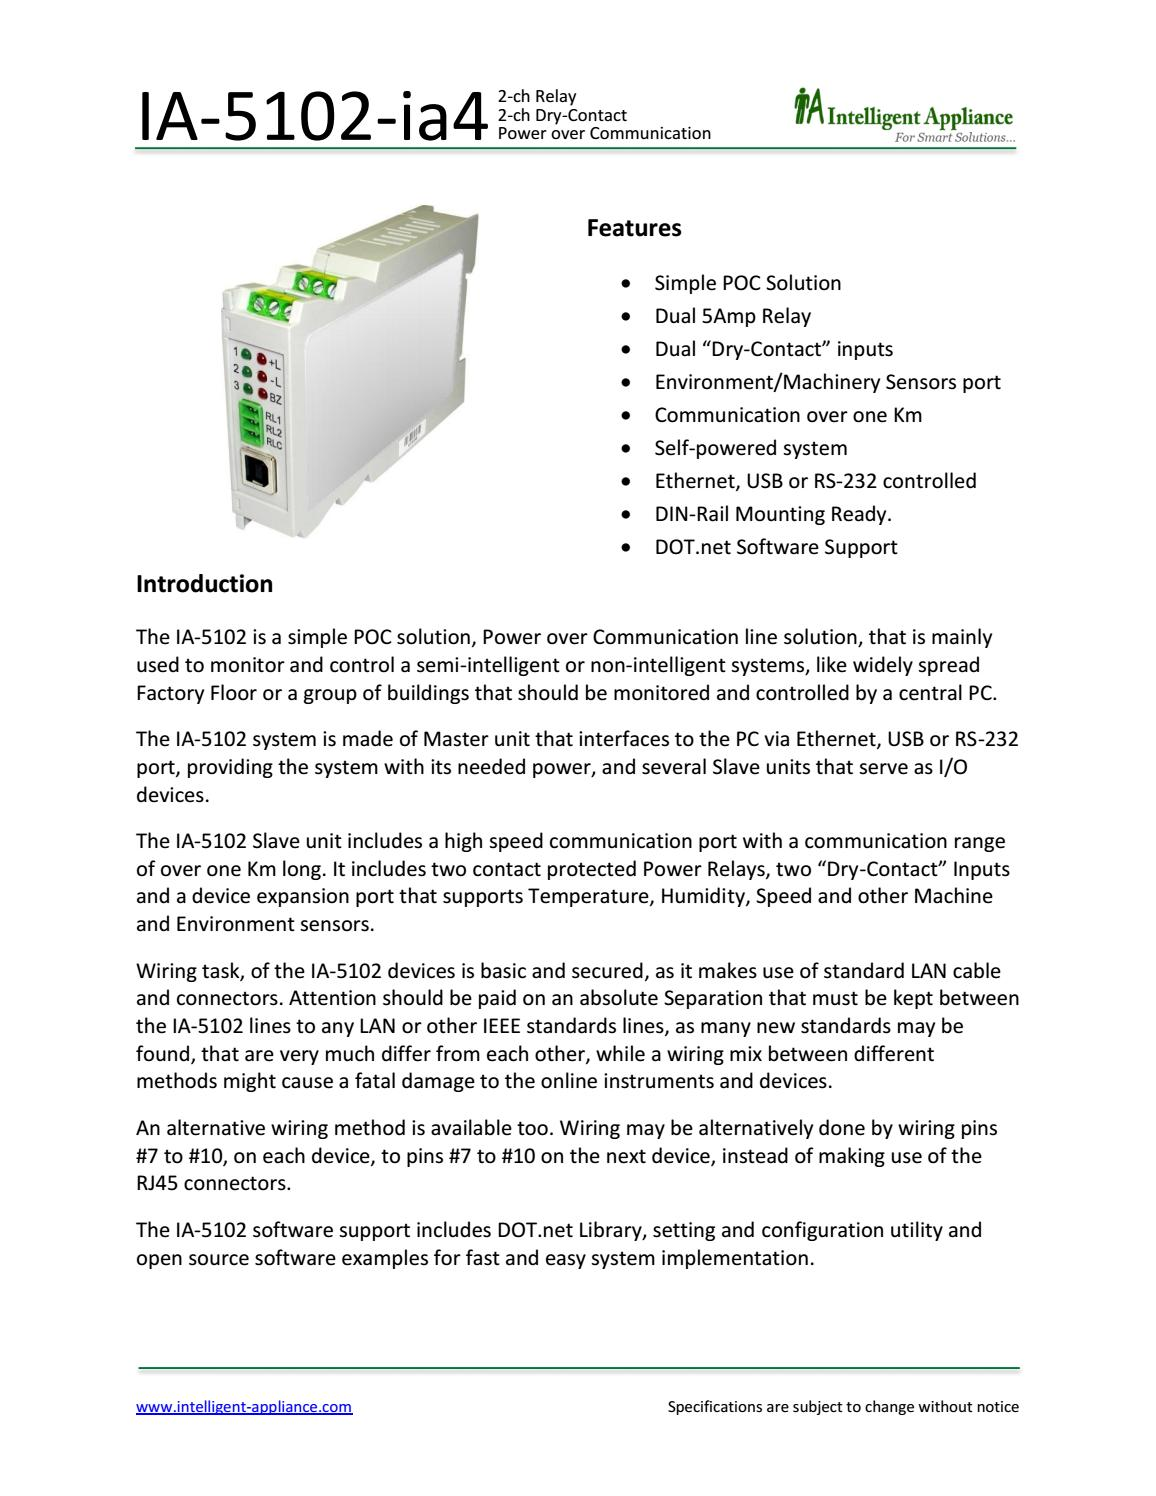 IA-5102-ia4 , Power over Communication 2-ch Relay, 2-ch Dry-Contact